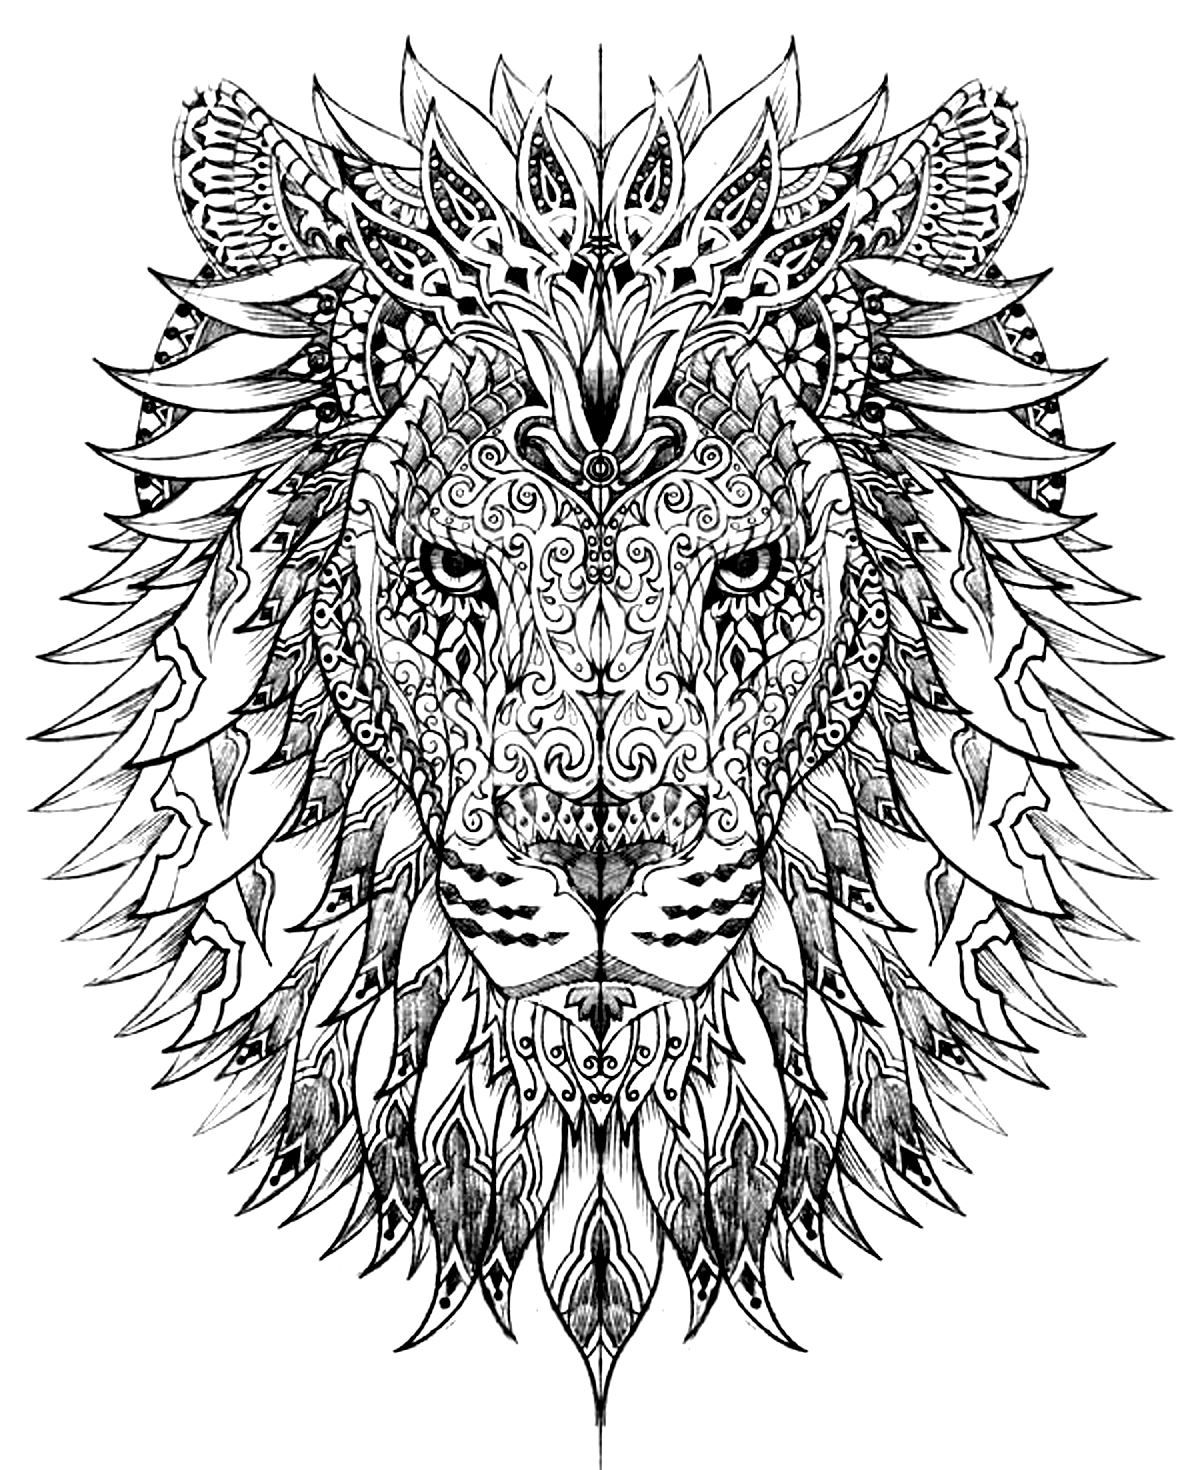 pin on adult coloring lion cyan or blue reviving drey erace markers easy bridge for coloring pages Lion Adult Coloring Page